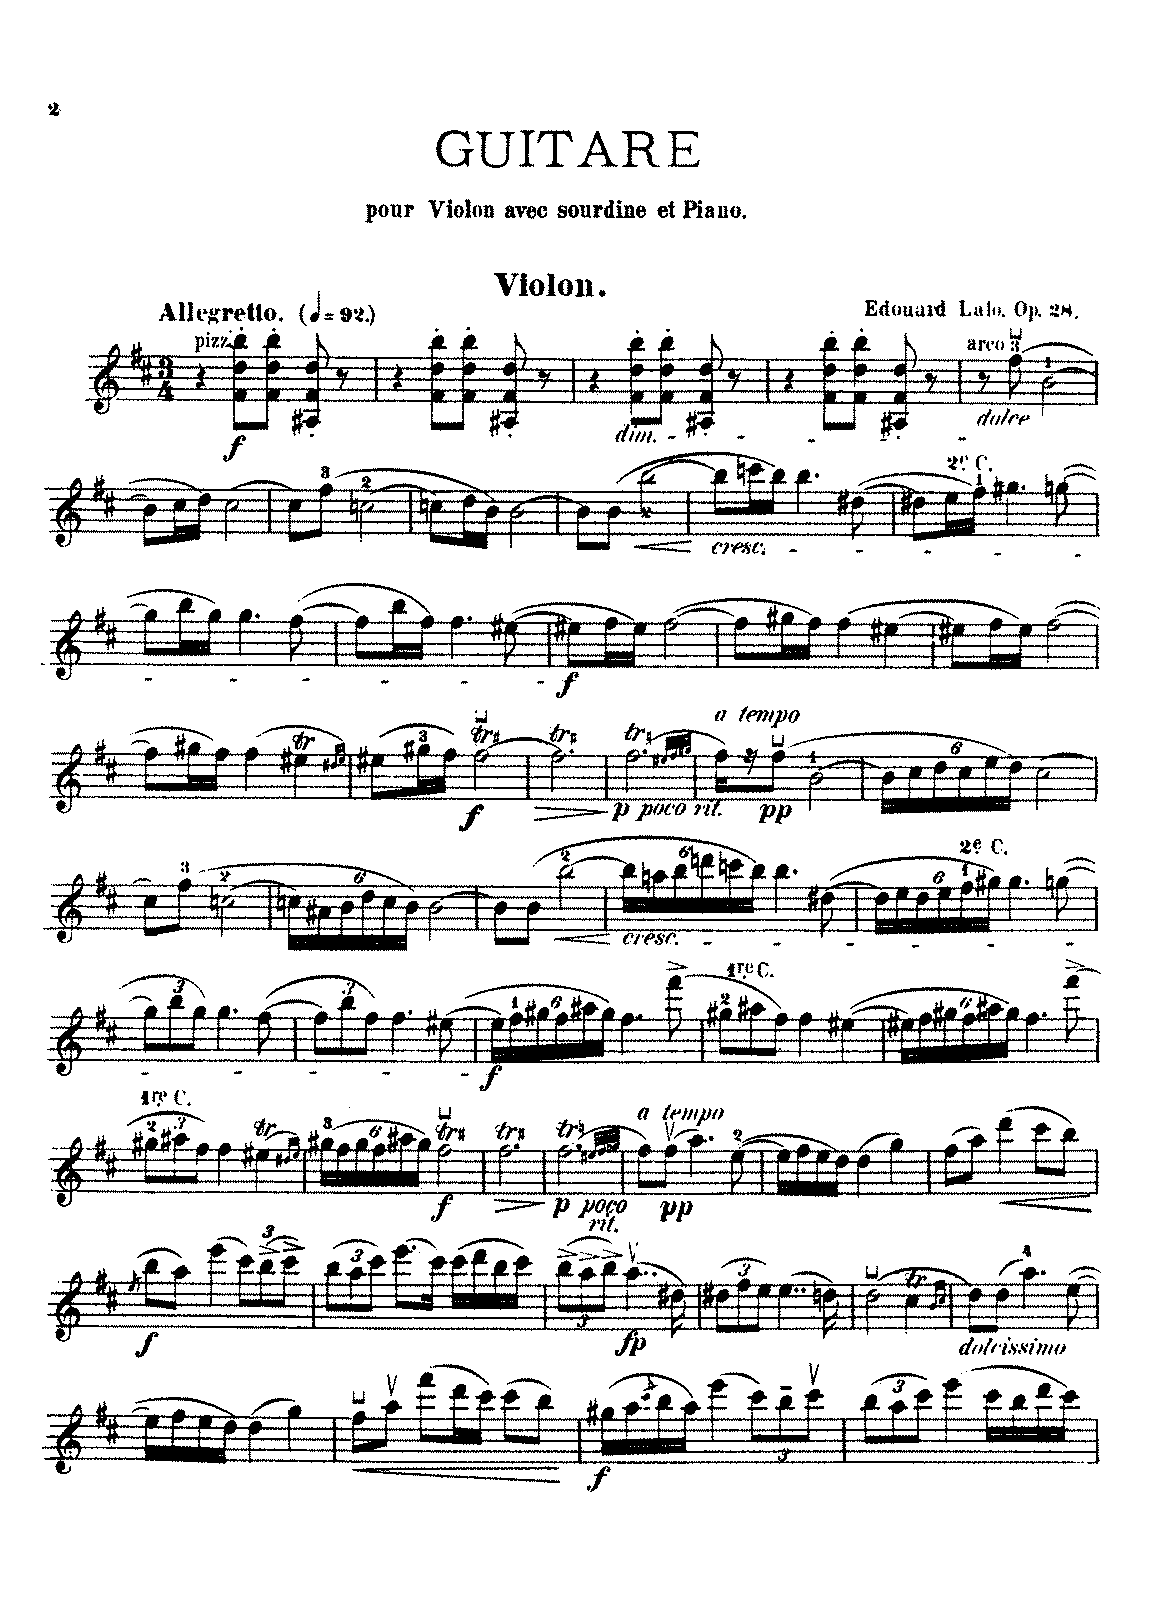 Lalo - Guitare, Op.28 (violin and piano).pdf